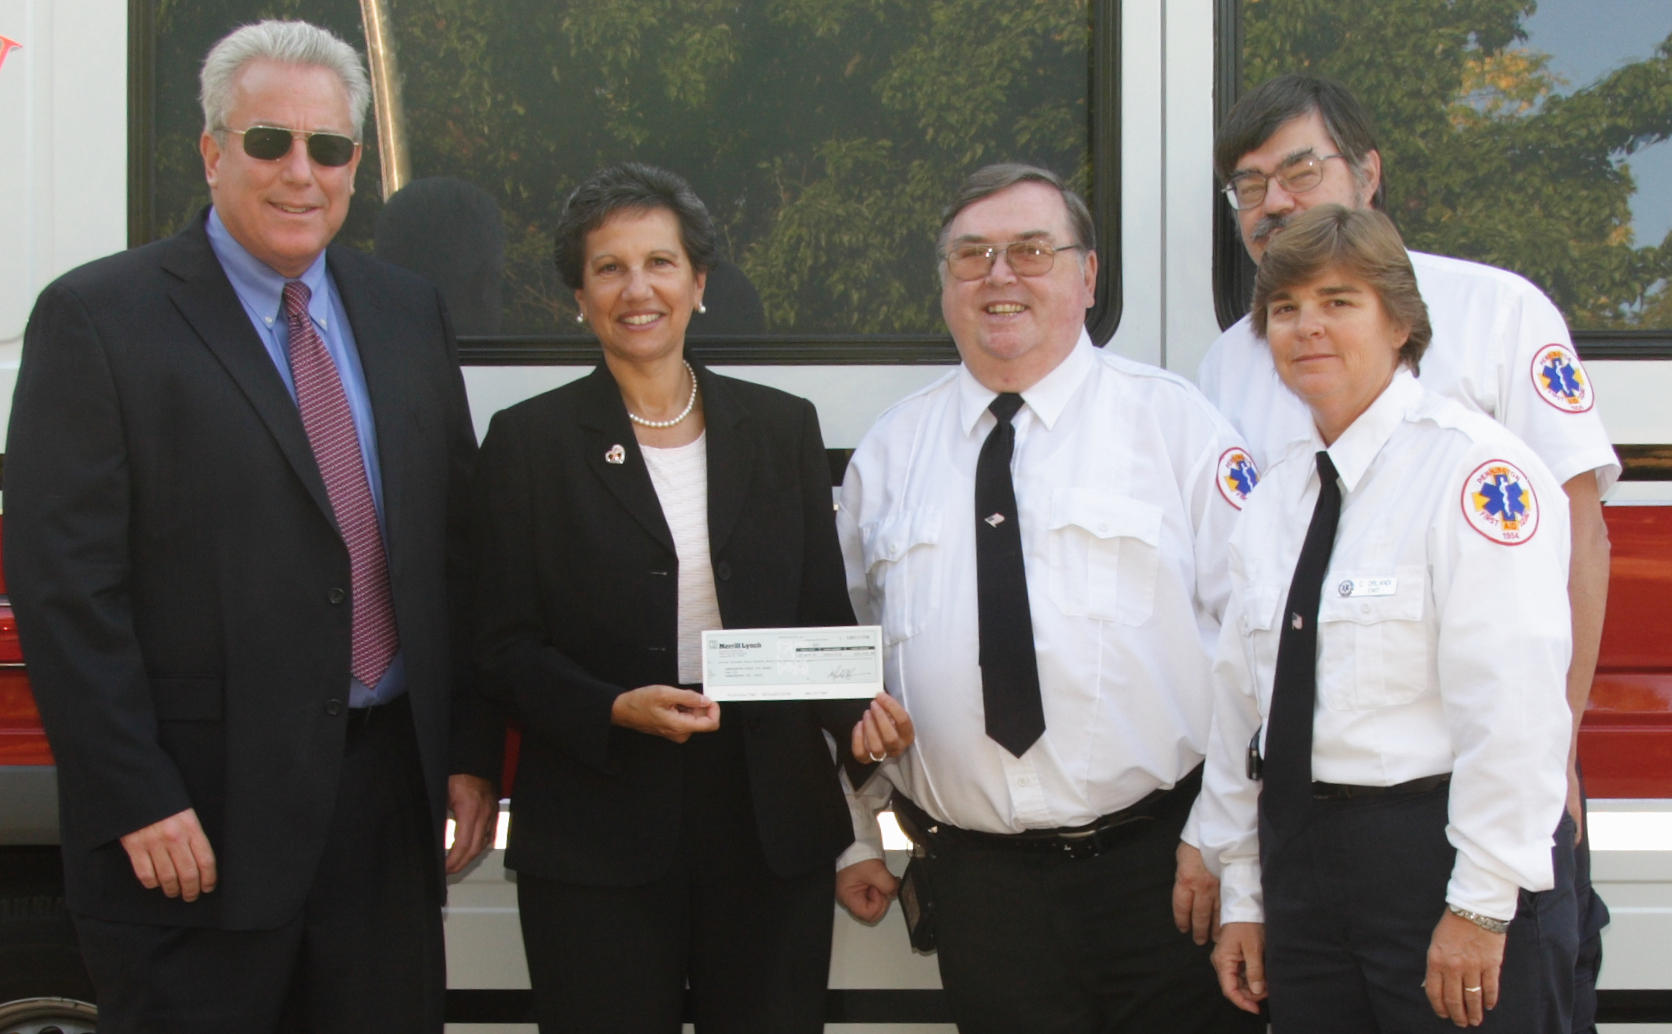 Robert Krukowski, Director Hopewell Facilities and Helene Garcia, Director      Community & Strategic Initiatives present check to President Daniel Boone,      Captain Cindy Orlandi, and First Assistant Captain Kirk Schmitt